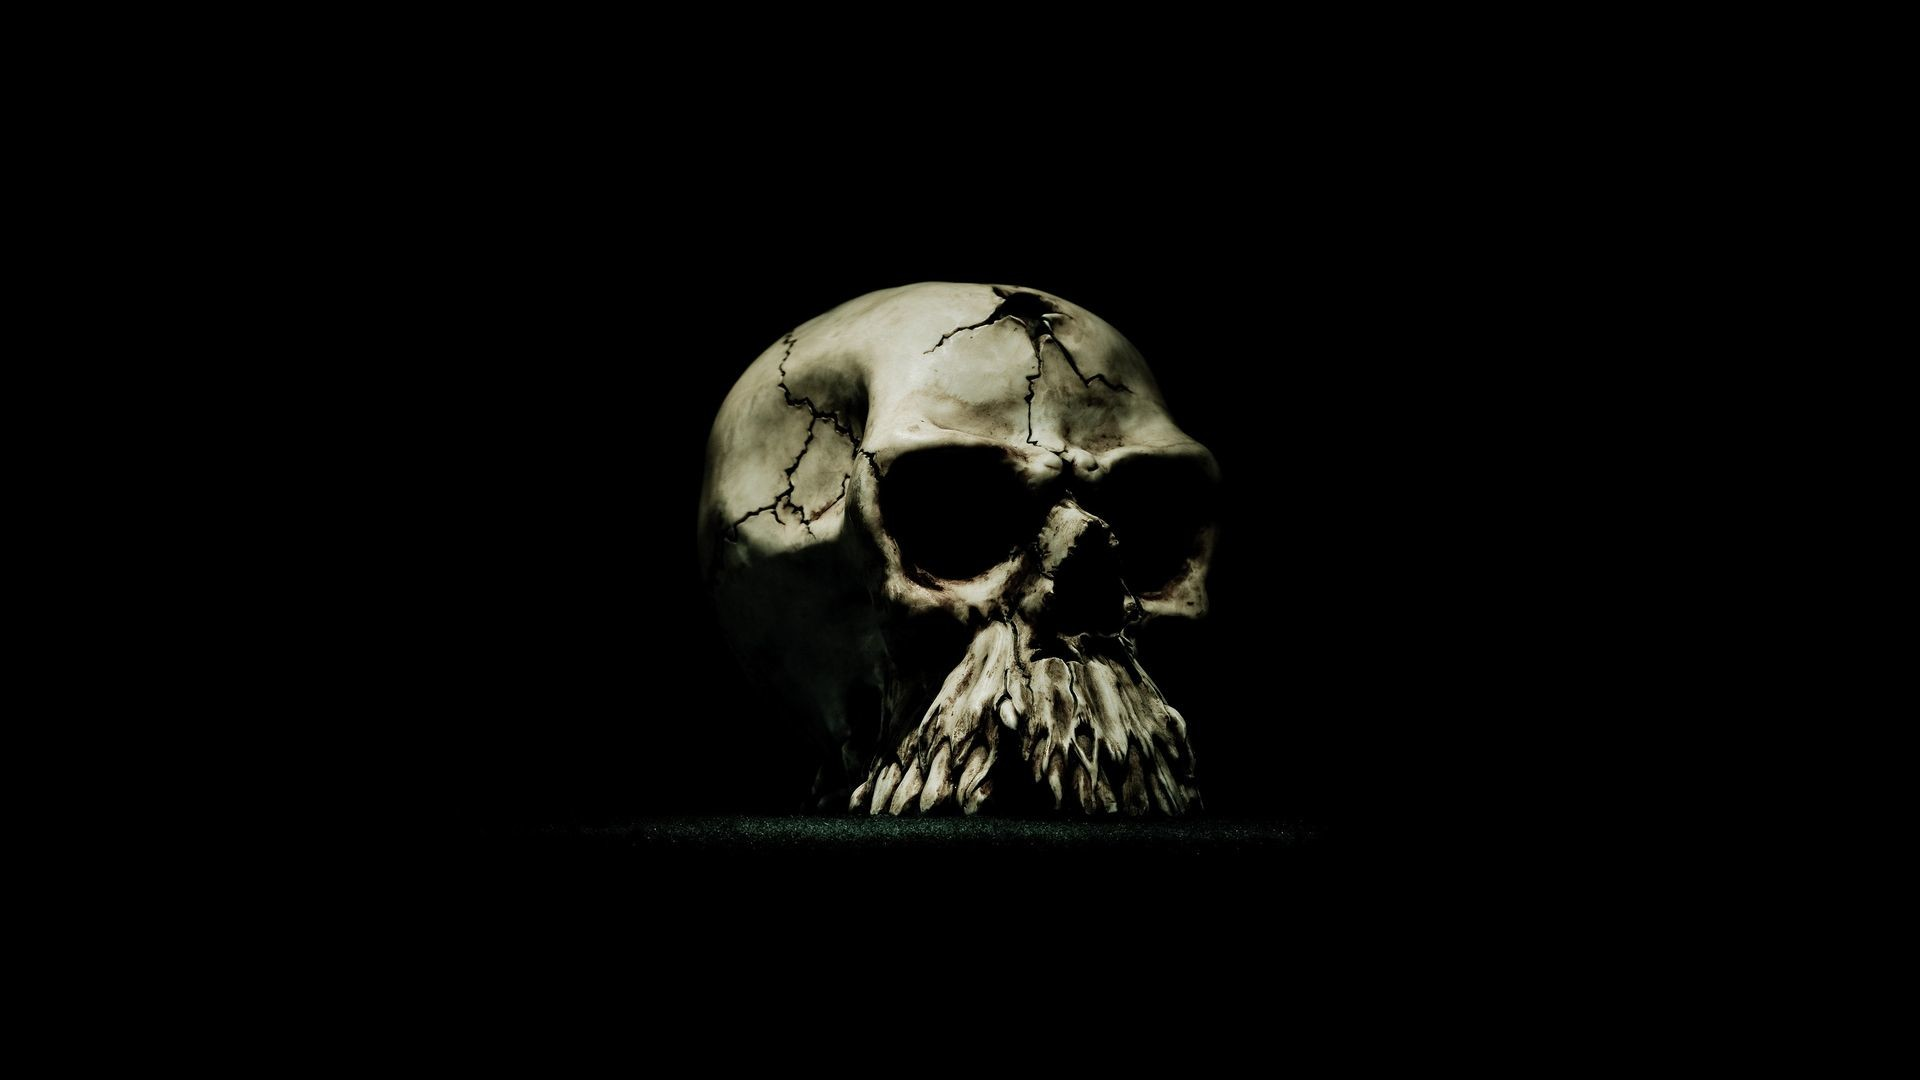 1920x1080 Top Skull Scary Wallpapers Images for Pinterest